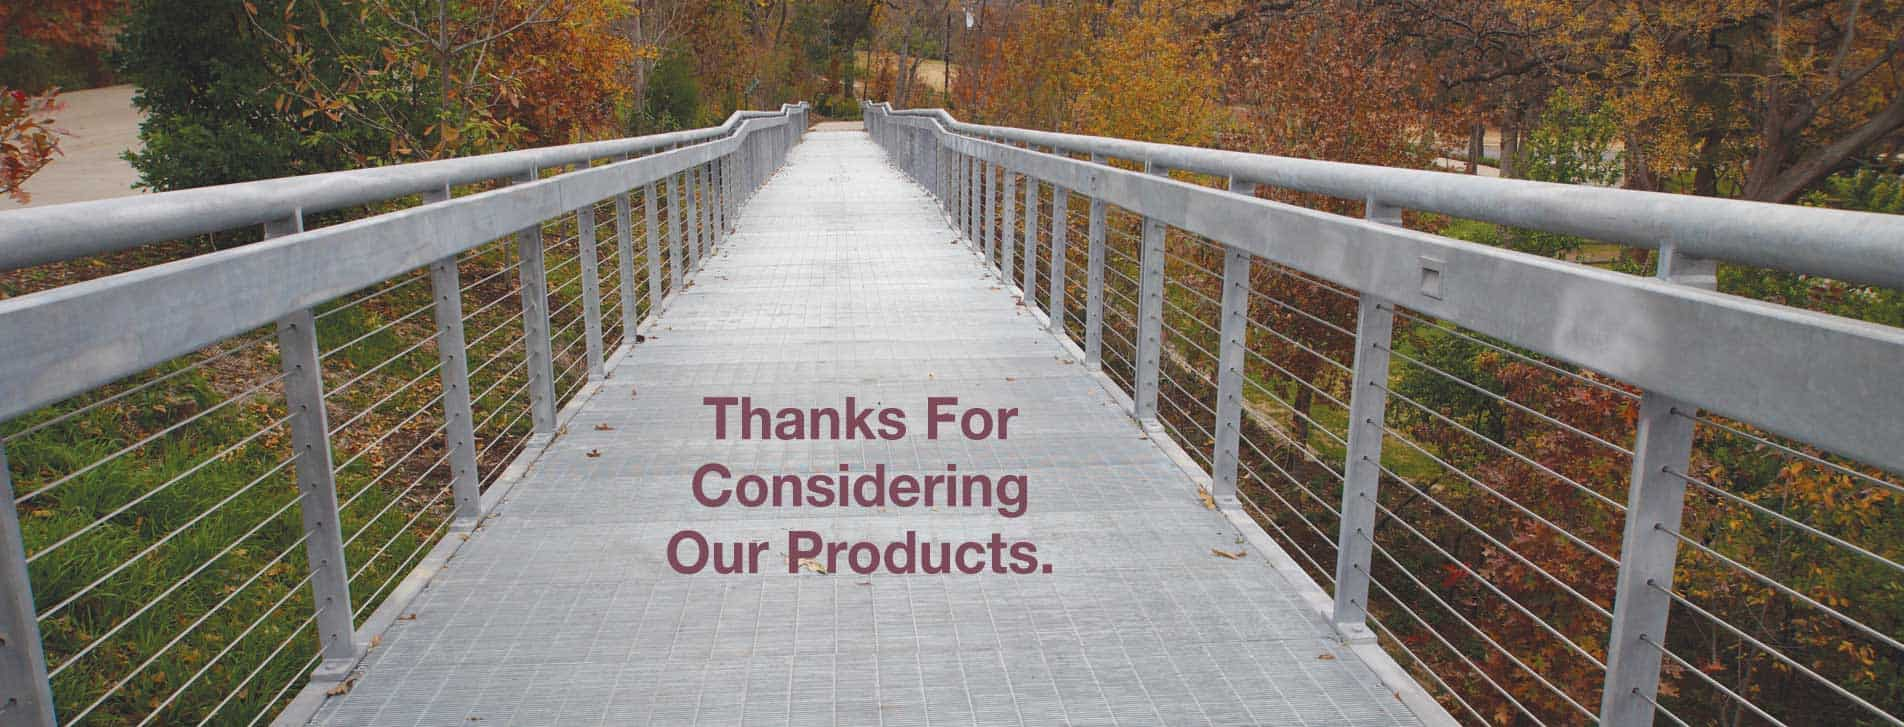 Blair Corporation thanks you for considering our products and trusting our experience